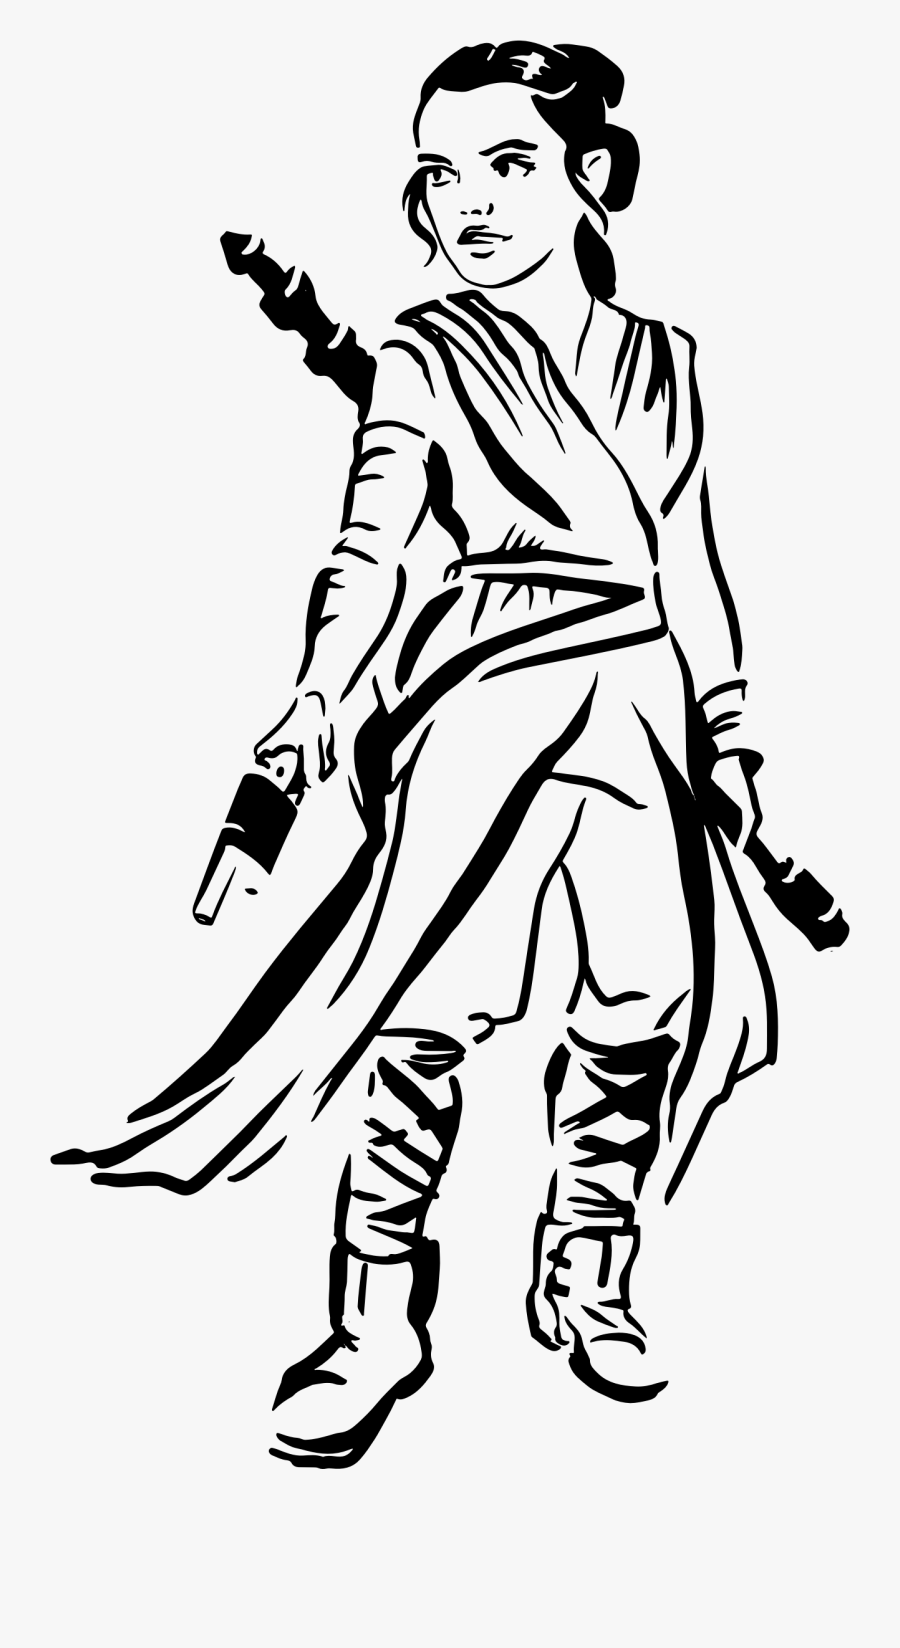 Transparent Teeth Clipart Black And White - Rey Star Wars Coloring Page, Transparent Clipart